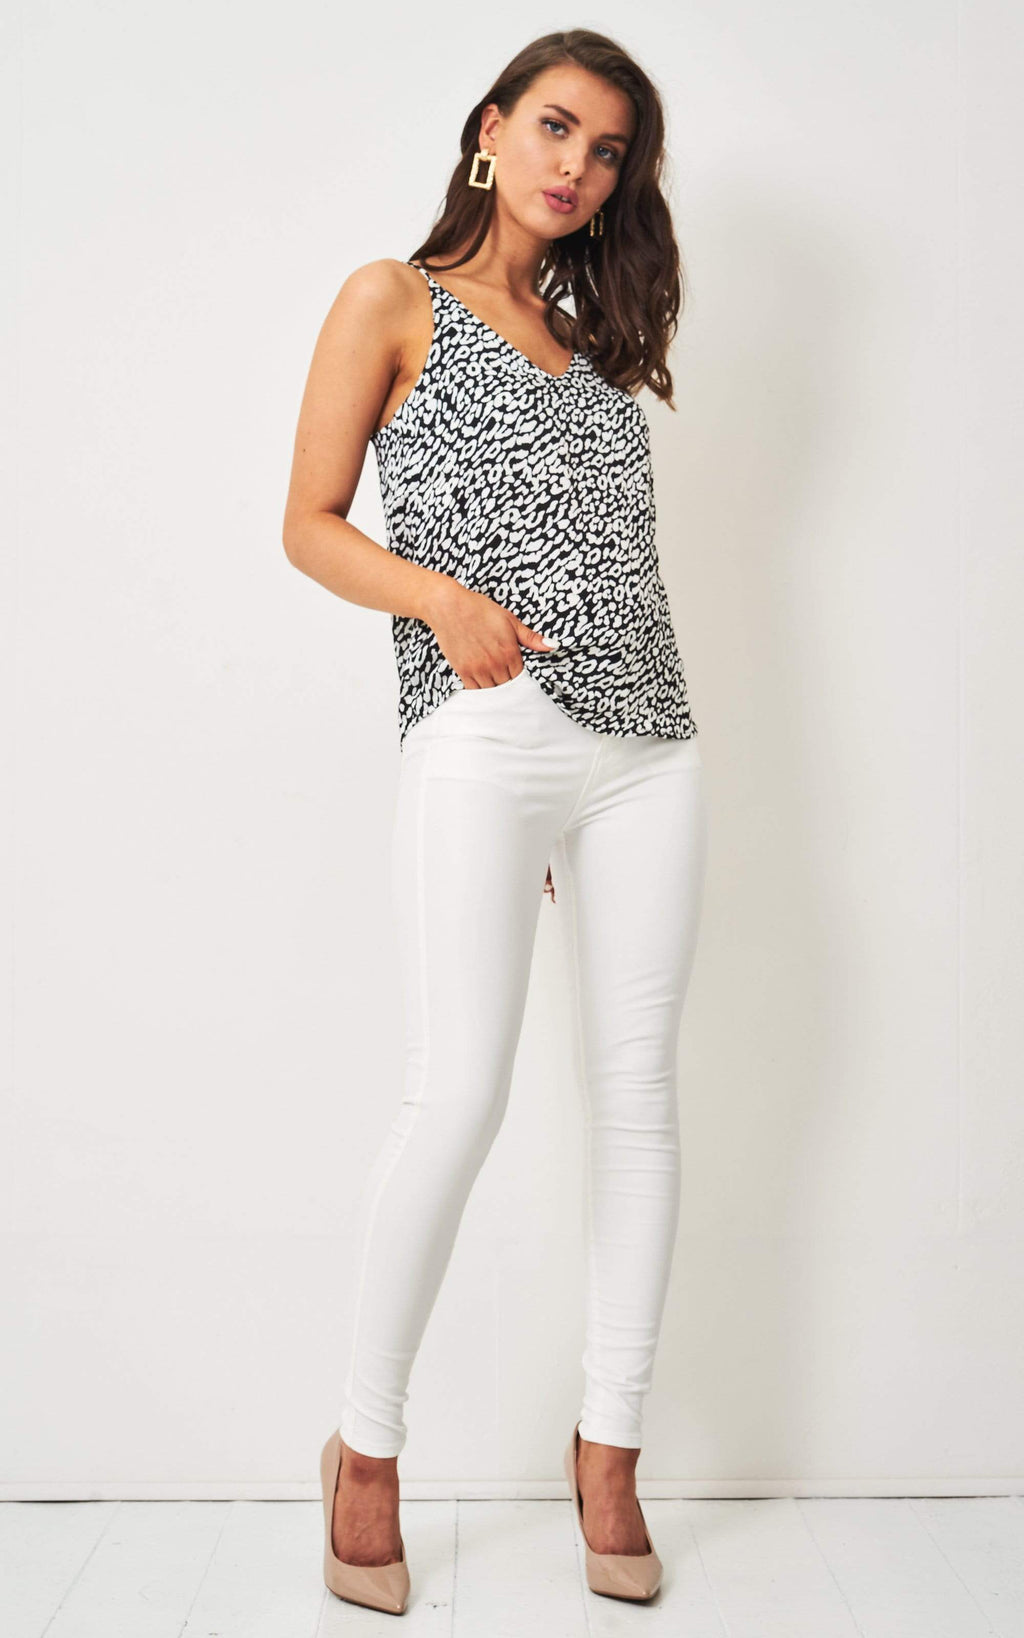 Morgan White Wax Coated Jeans - love frontrow